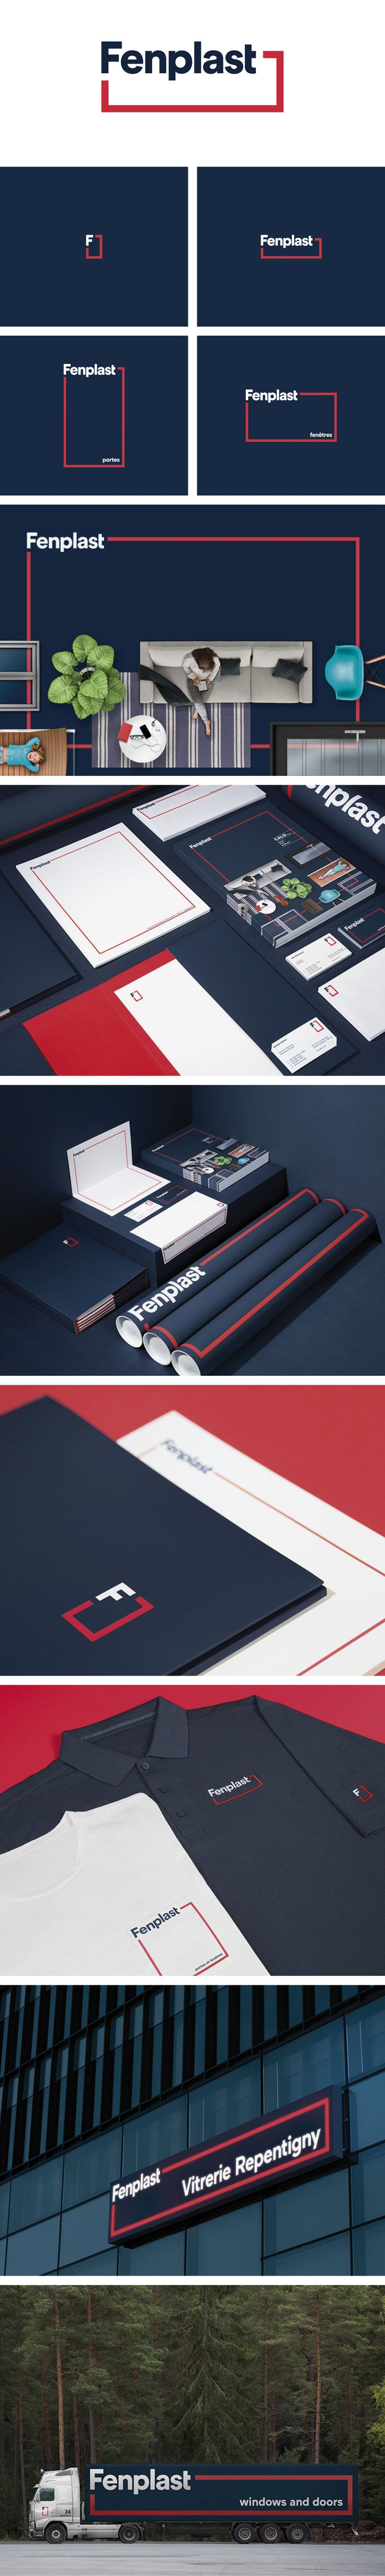 More corporate-designs are collected on: https://pinterest.com/rothenhaeusler/best-of-corporate-design/ · Agency: lg2 · Client: Fenplast · Source: http://lg2.com/fr/realisations/789/fenplast-identite-visuelle #branding #identity #corporatedesign http://jrstudioweb.com/diseno-grafico/diseno-de-logotipos/